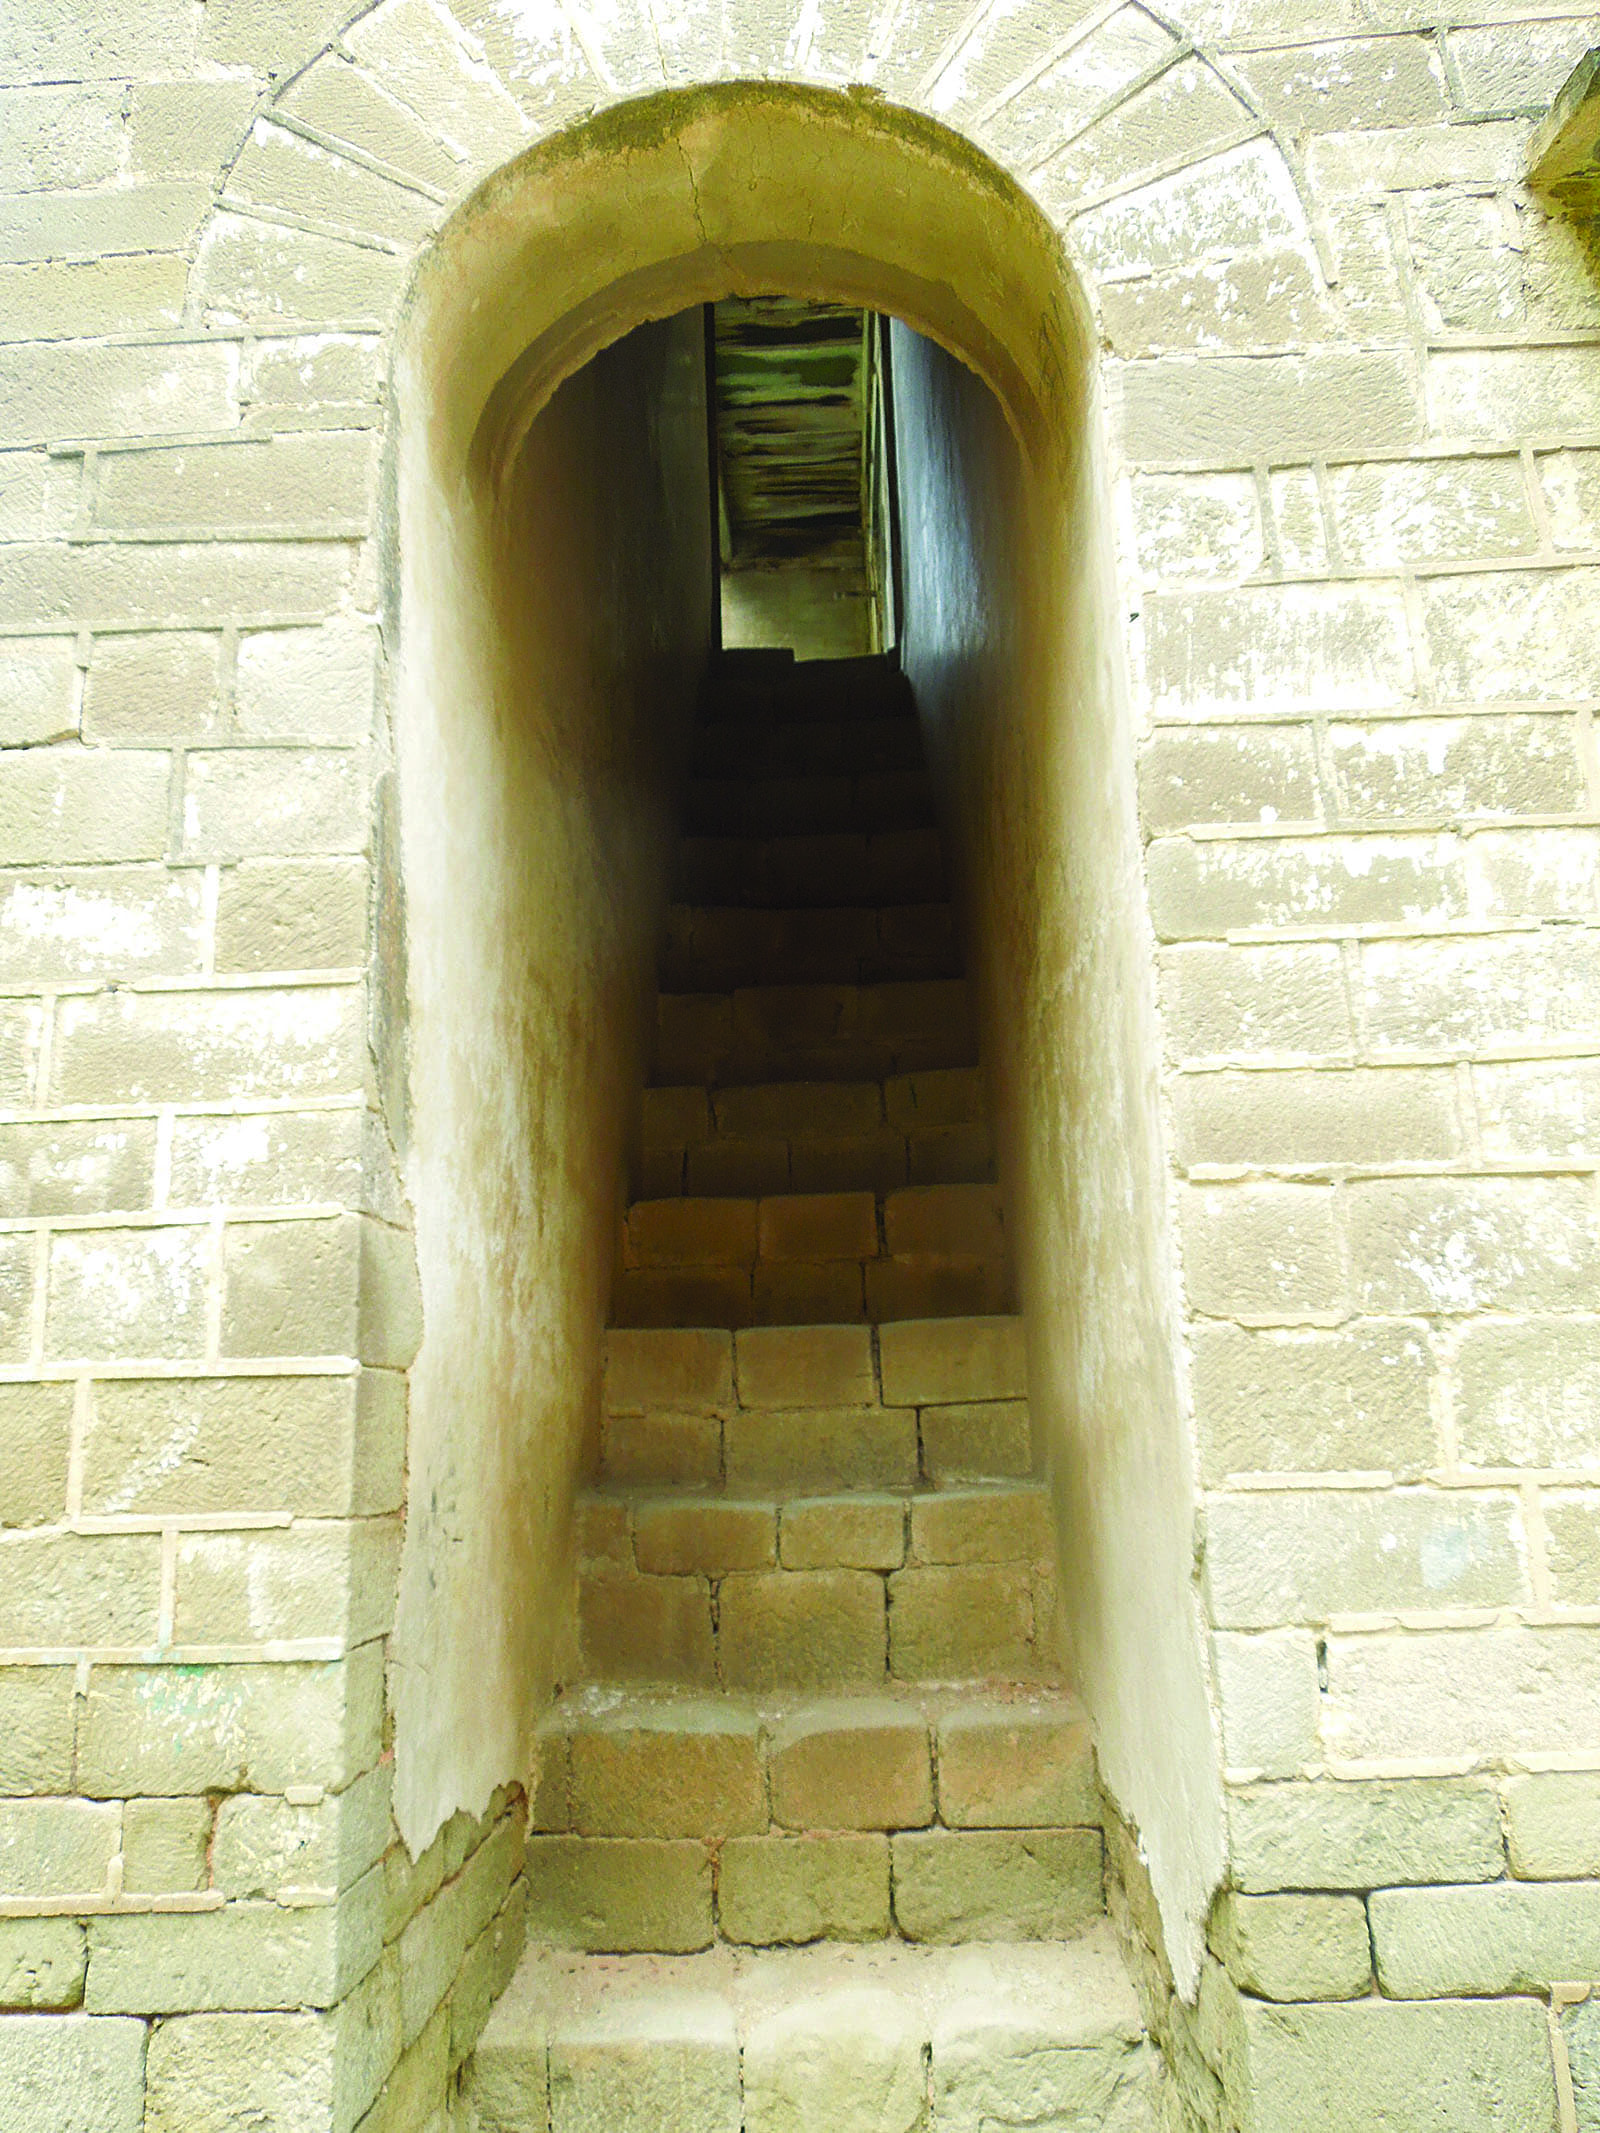 A beautifully built stone staircase that leads to the upper levels.